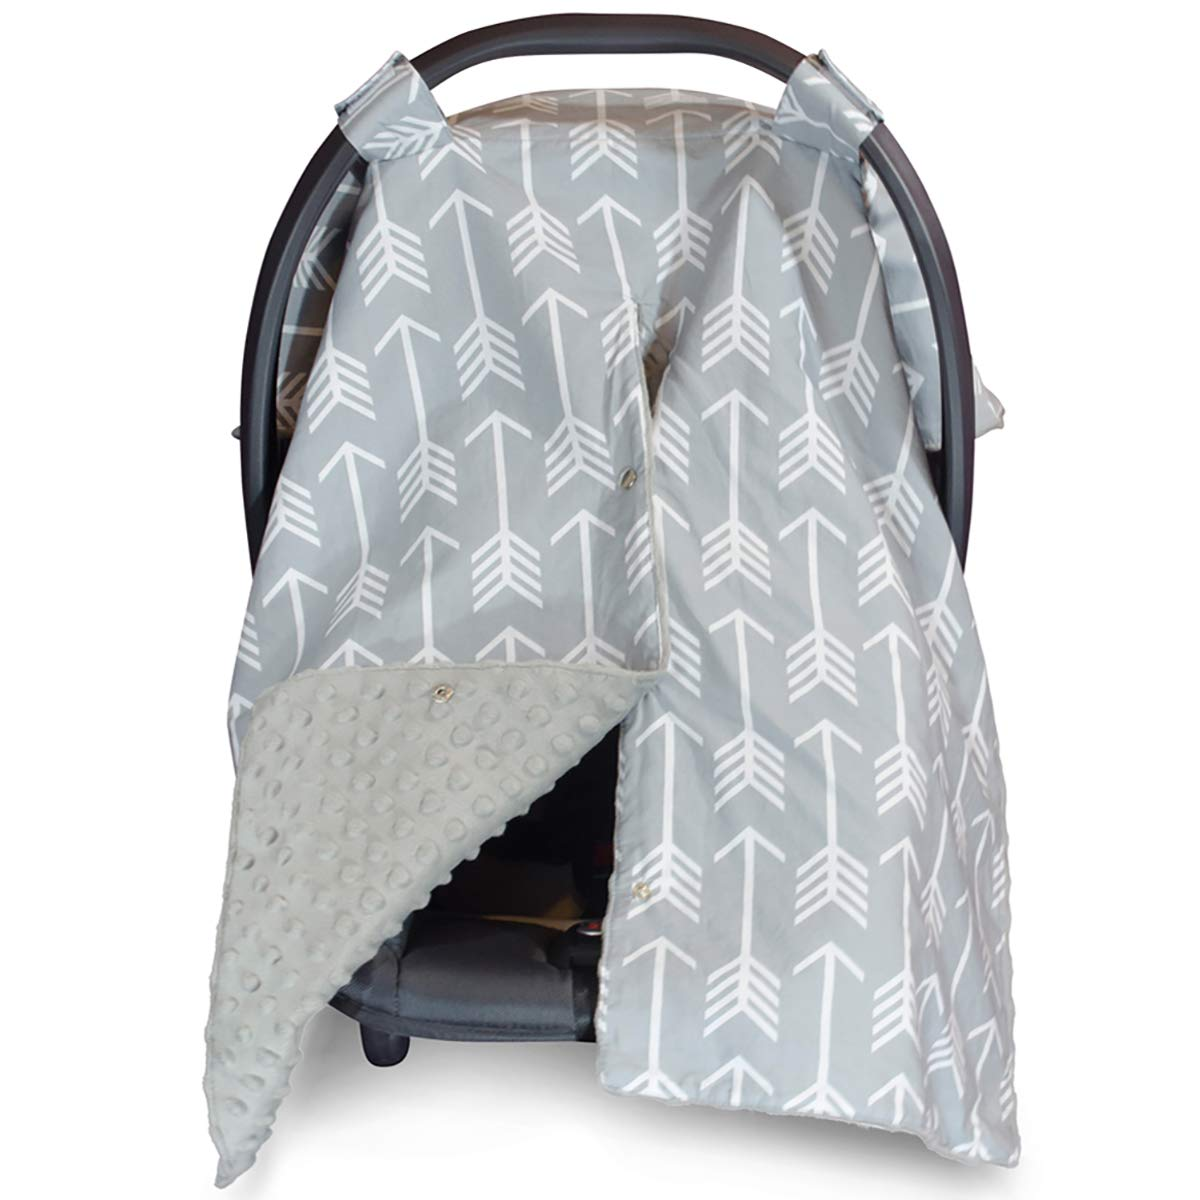 2 in 1 Carseat Canopy and Nursing Cover Up with Peekaboo Opening   Large Infant Car Seat Canopy for Boy or Girl   Best Baby Shower Gift for Breastfeeding Moms   Arrow Pattern with Grey Minky